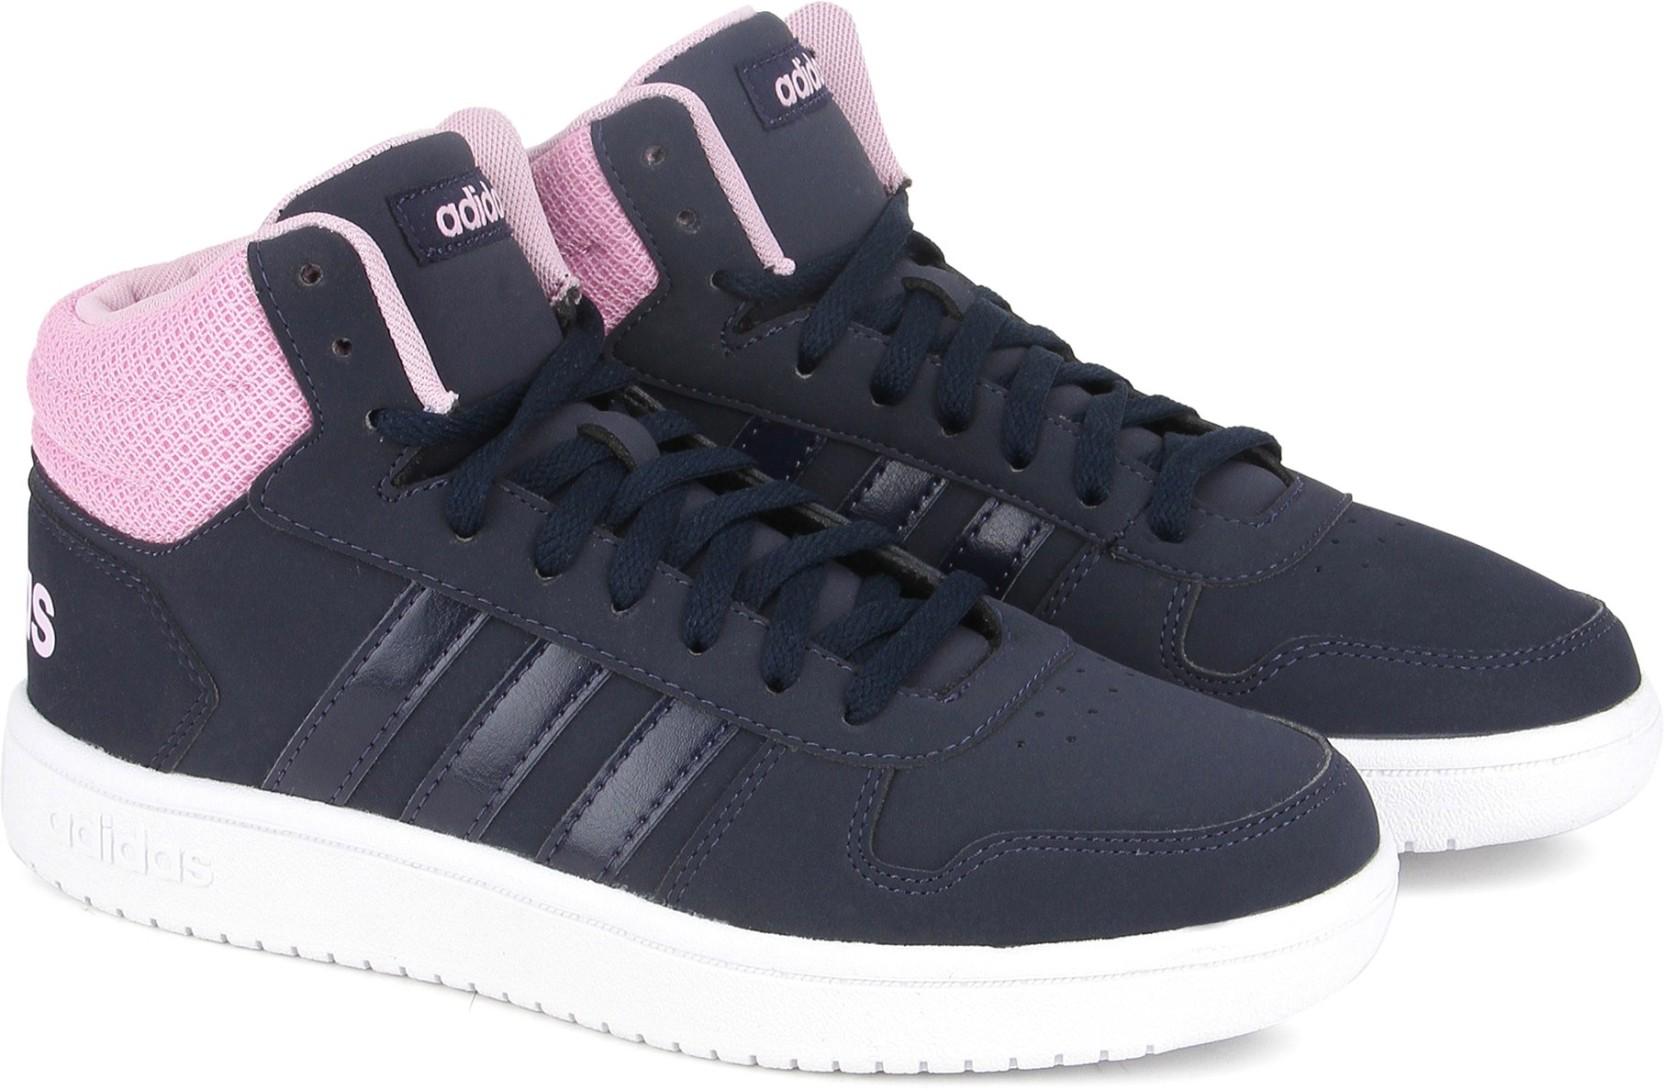 6cc64ca0 ADIDAS HOOPS 2.0 MID Basketball Shoe For Women